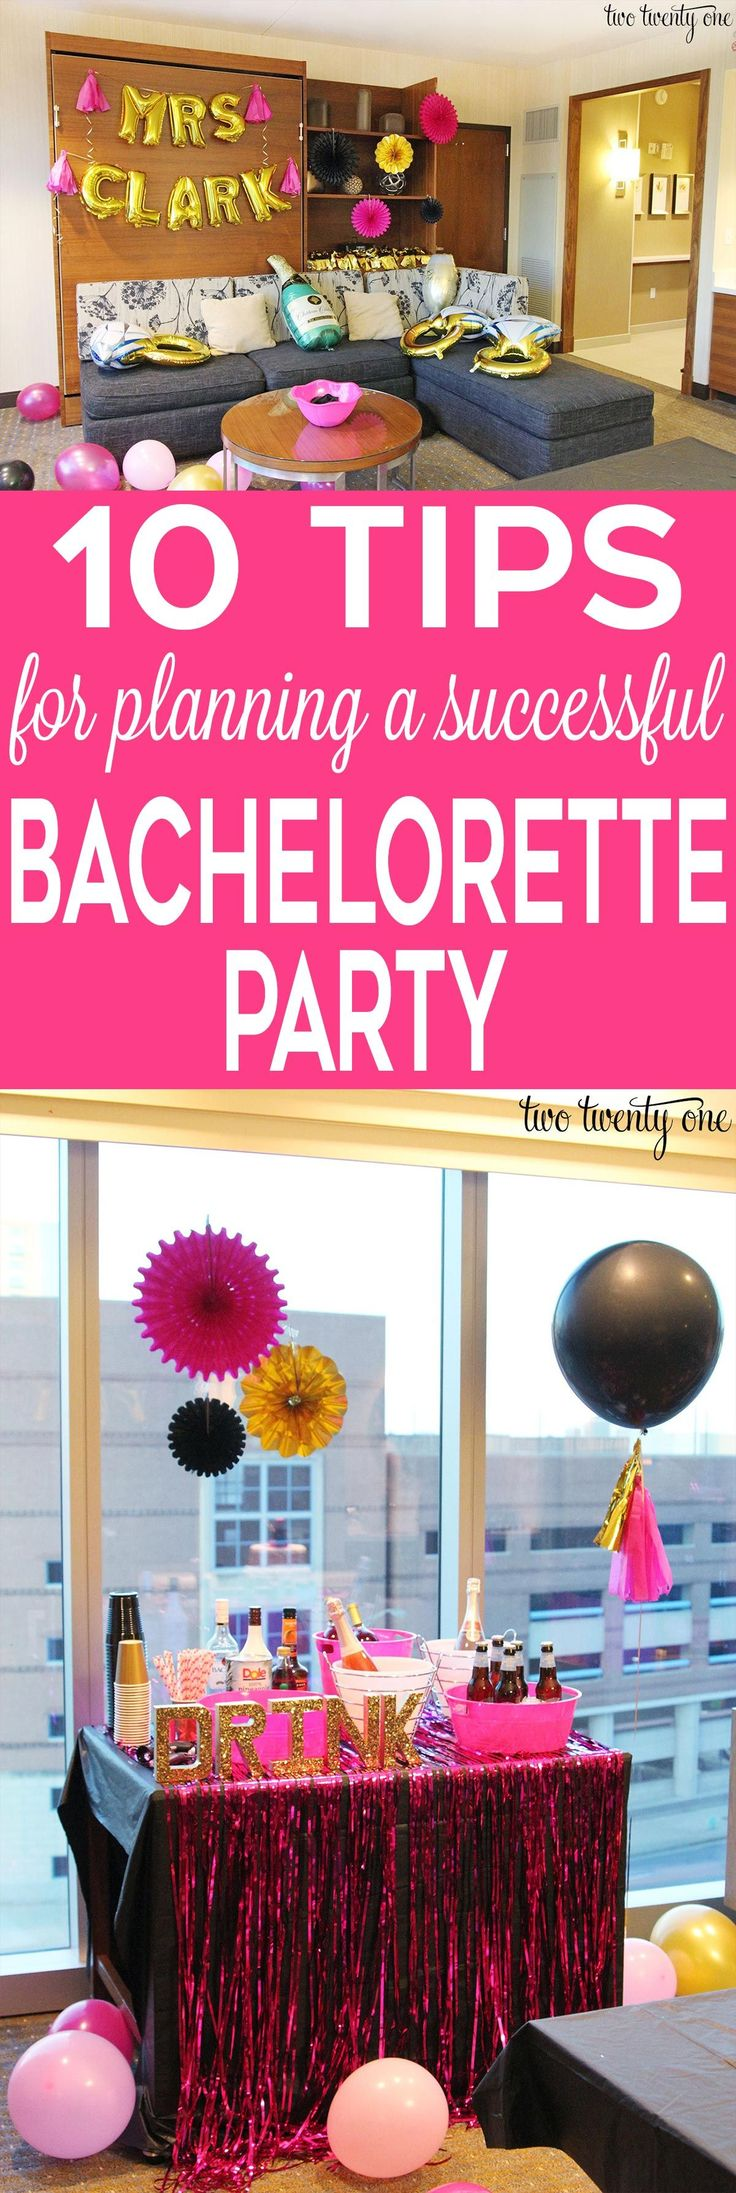 10 tips for planning a successful bachelorette party!